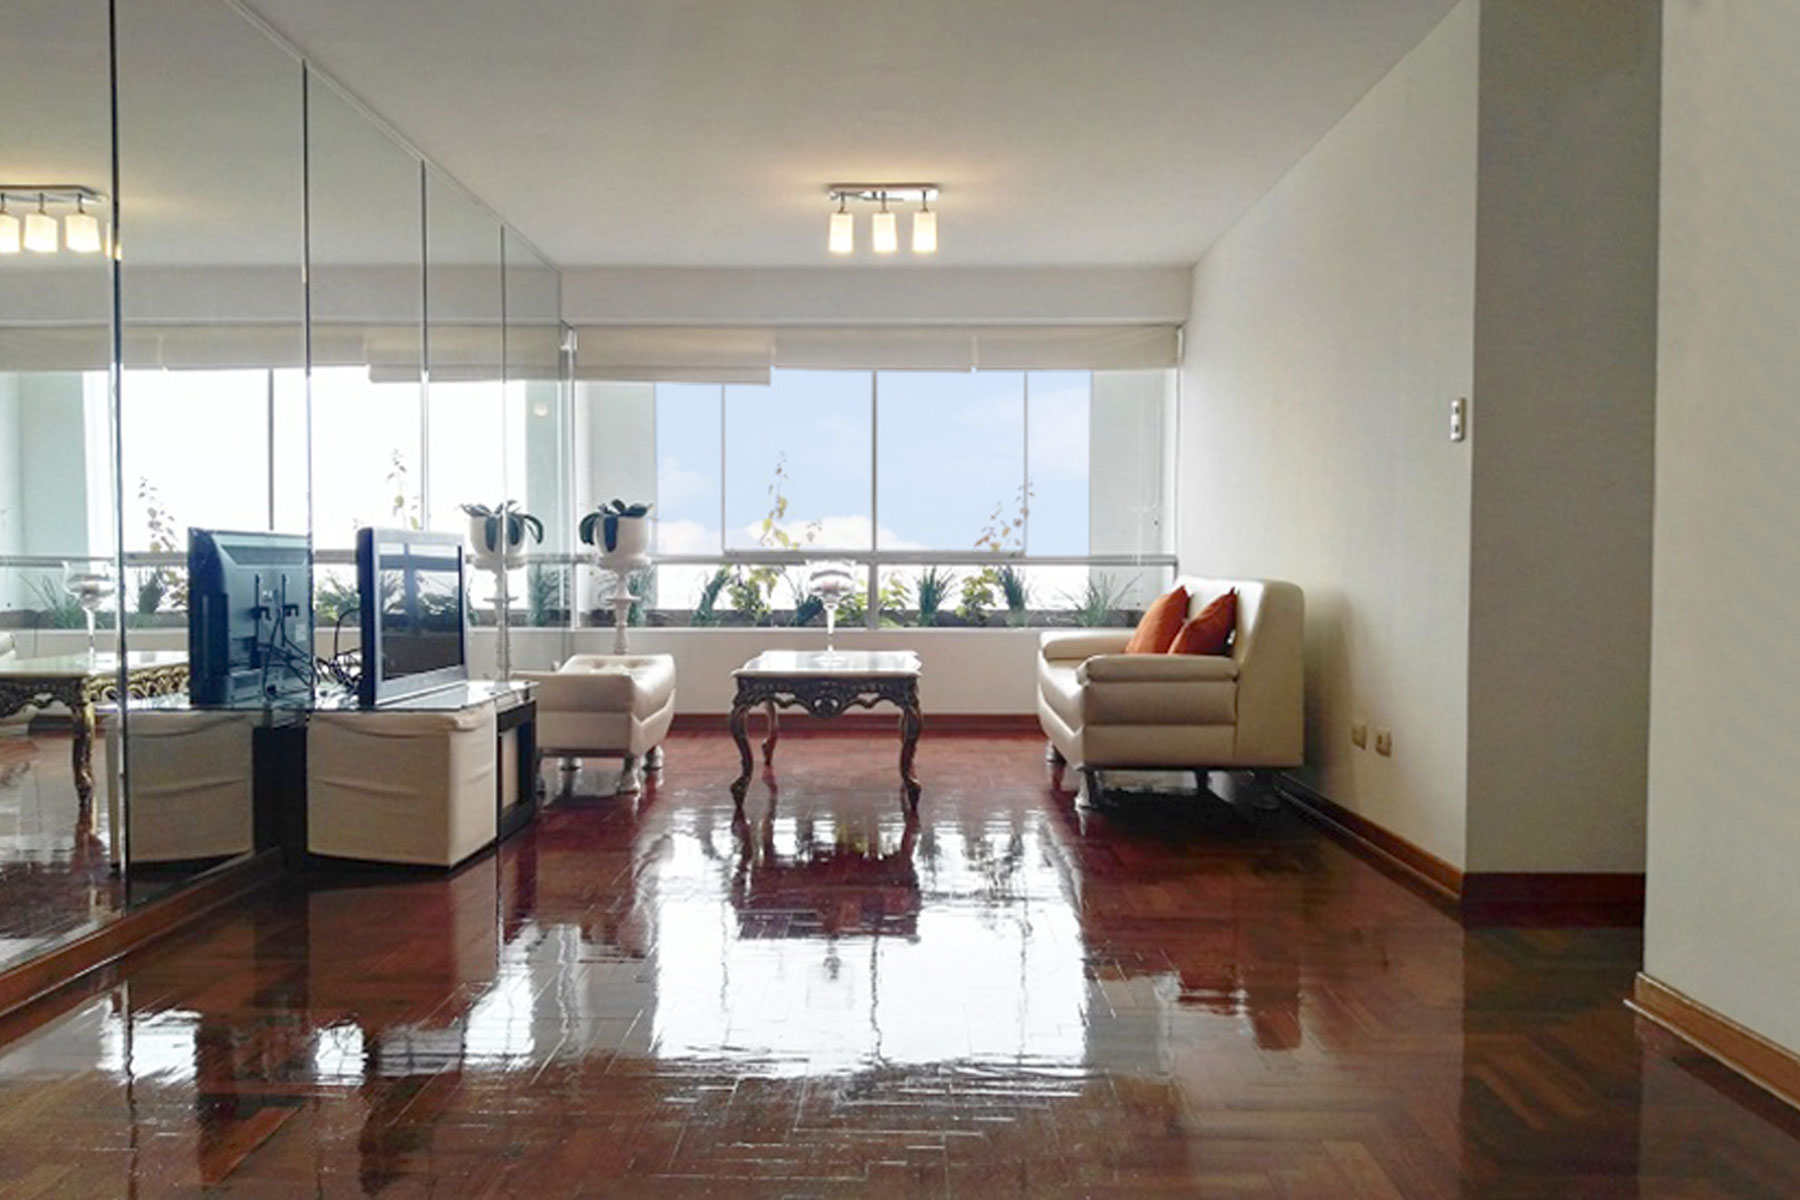 Apartment for Sale at Excelente Departamento en Venta Reducto Miraflores Av. Reducto Miraflores, Lima, 18 Peru